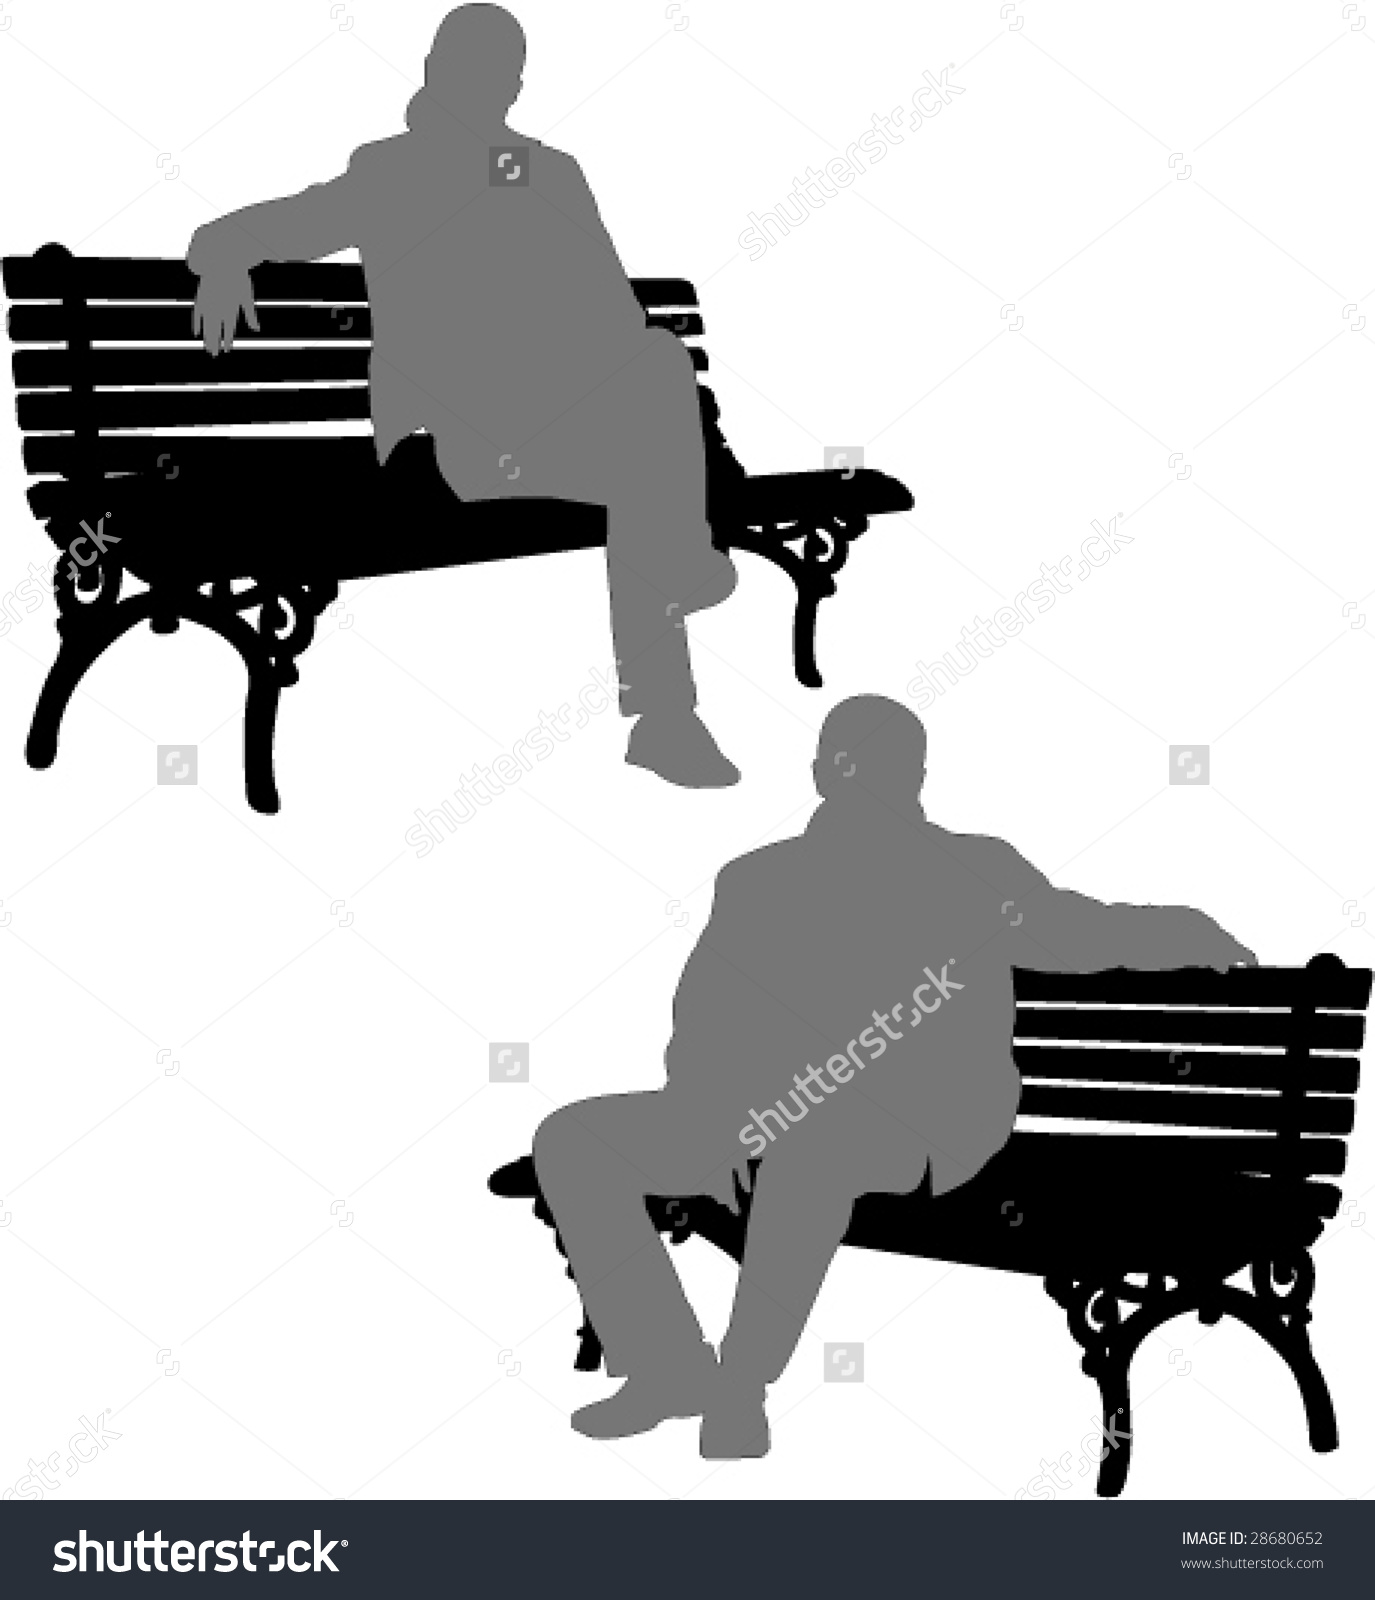 Silhouette Free Clipart Of 2 Men Setting On A Bench.